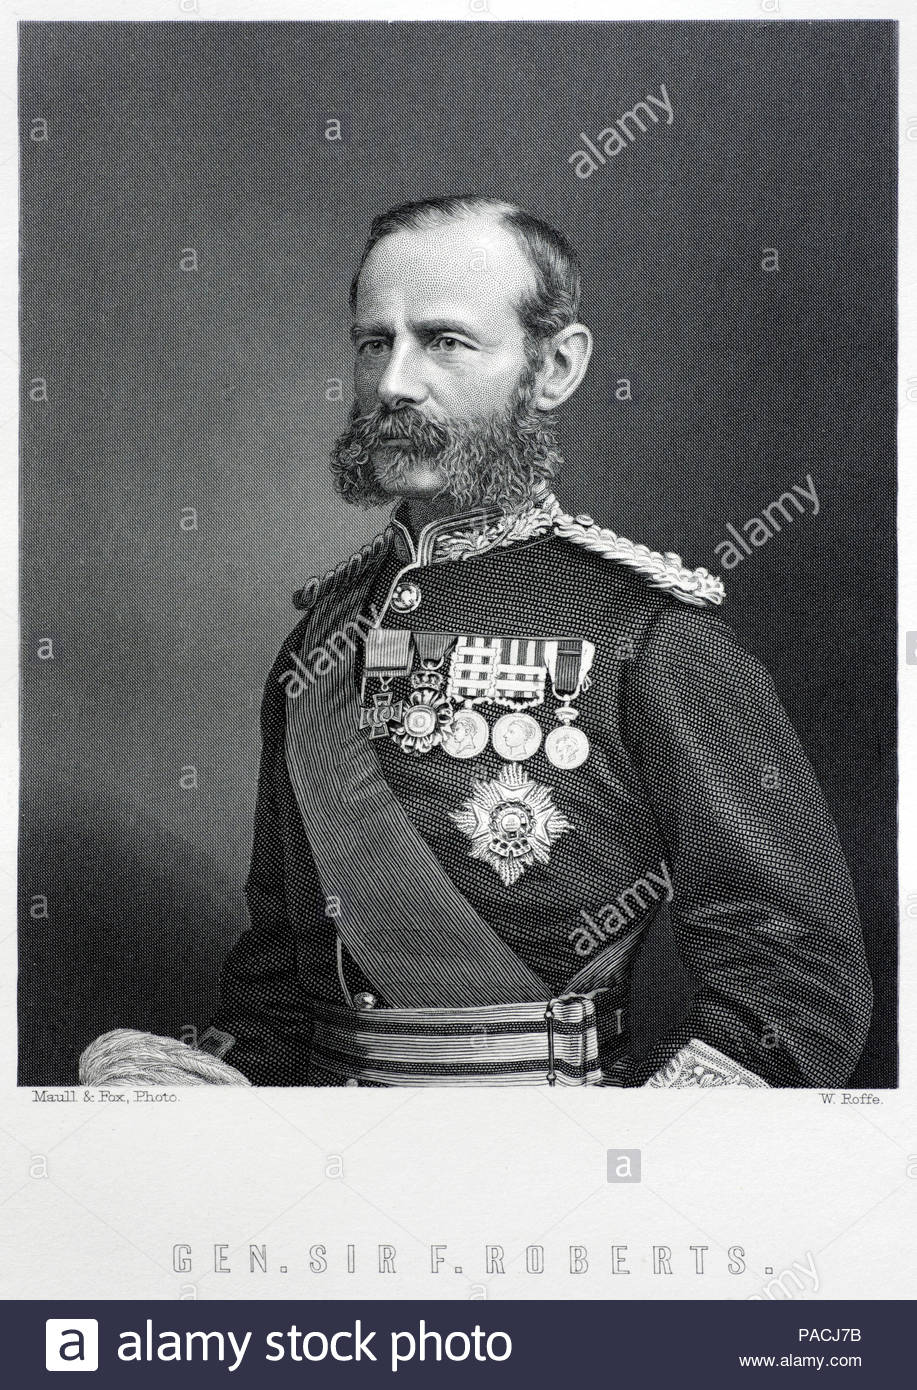 Sir Frederick Sleigh Roberts, 1st Earl Roberts, 1832 – 1914 was a British soldier who was one of the most successful commanders of the 19th century, antique engraving from 1884 - Stock Image